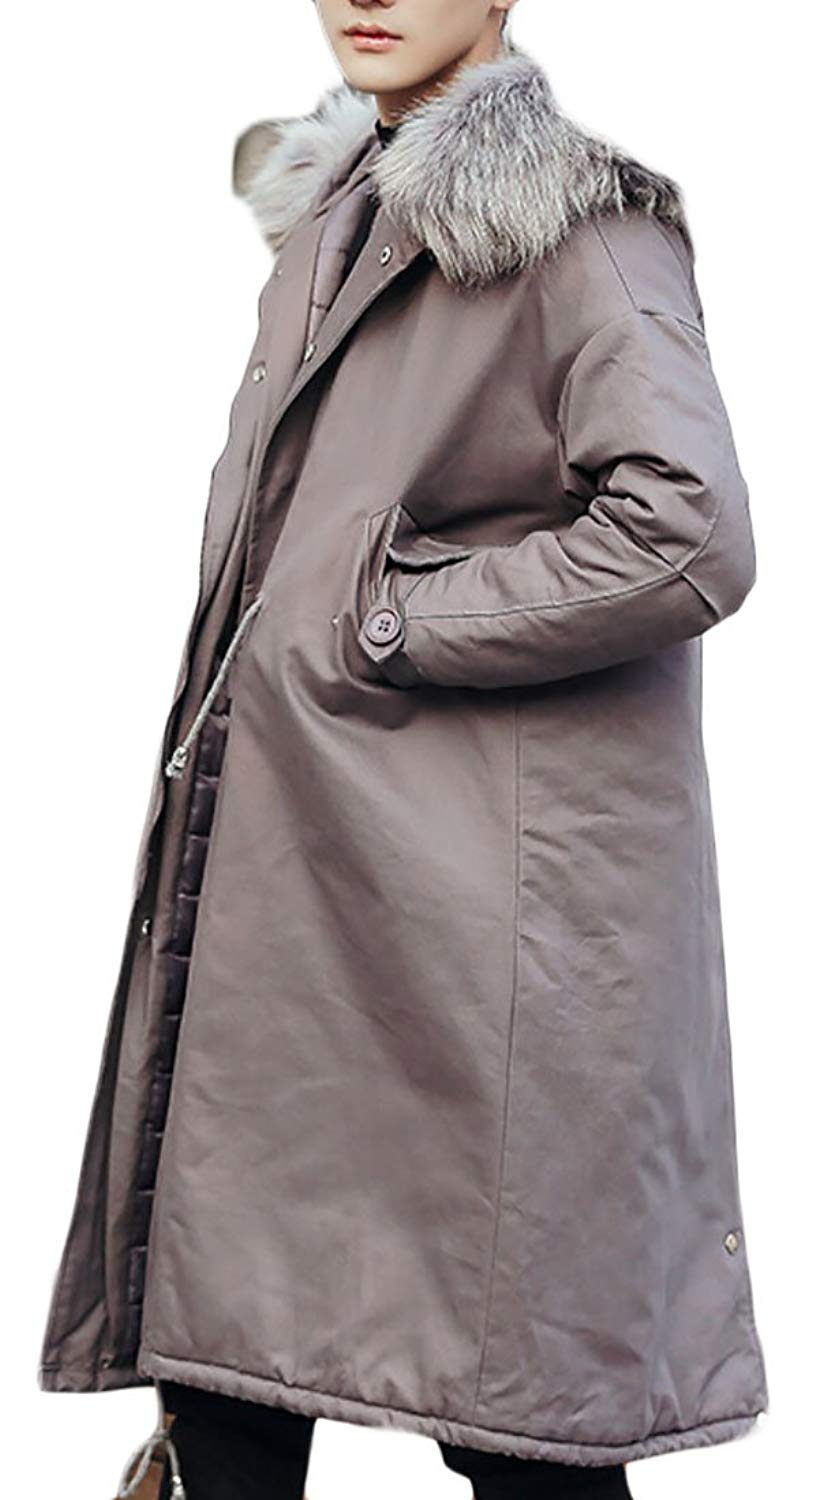 yibiyuan Mens Jacket Casual Slim Quilted Puffer Winter Hooded Parka Coat